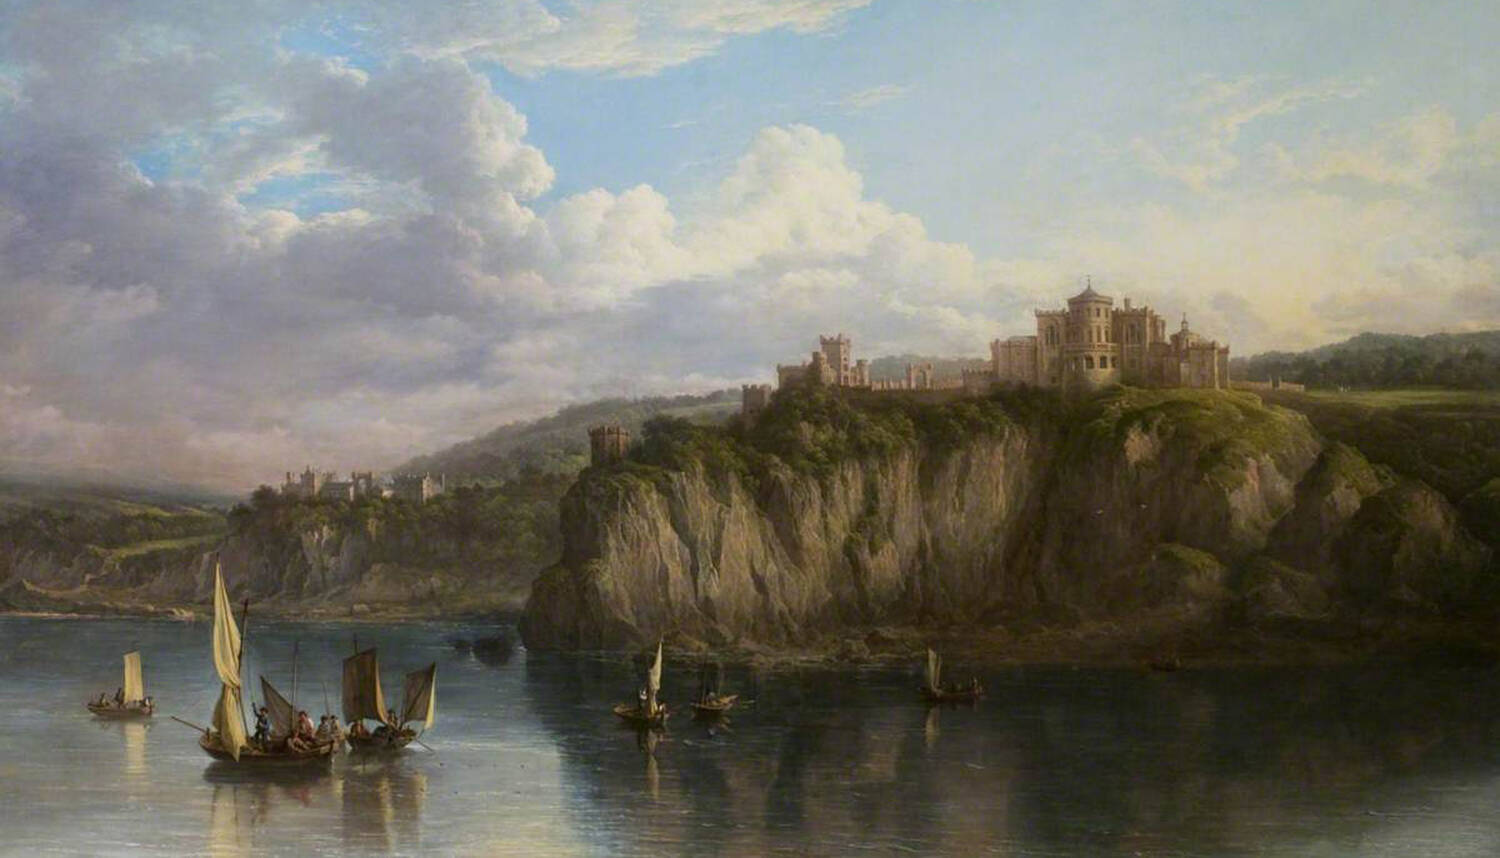 An oil painting of Culzean Castle, seen from the sea. A number of small sailing boats are on the smooth water in the foreground.